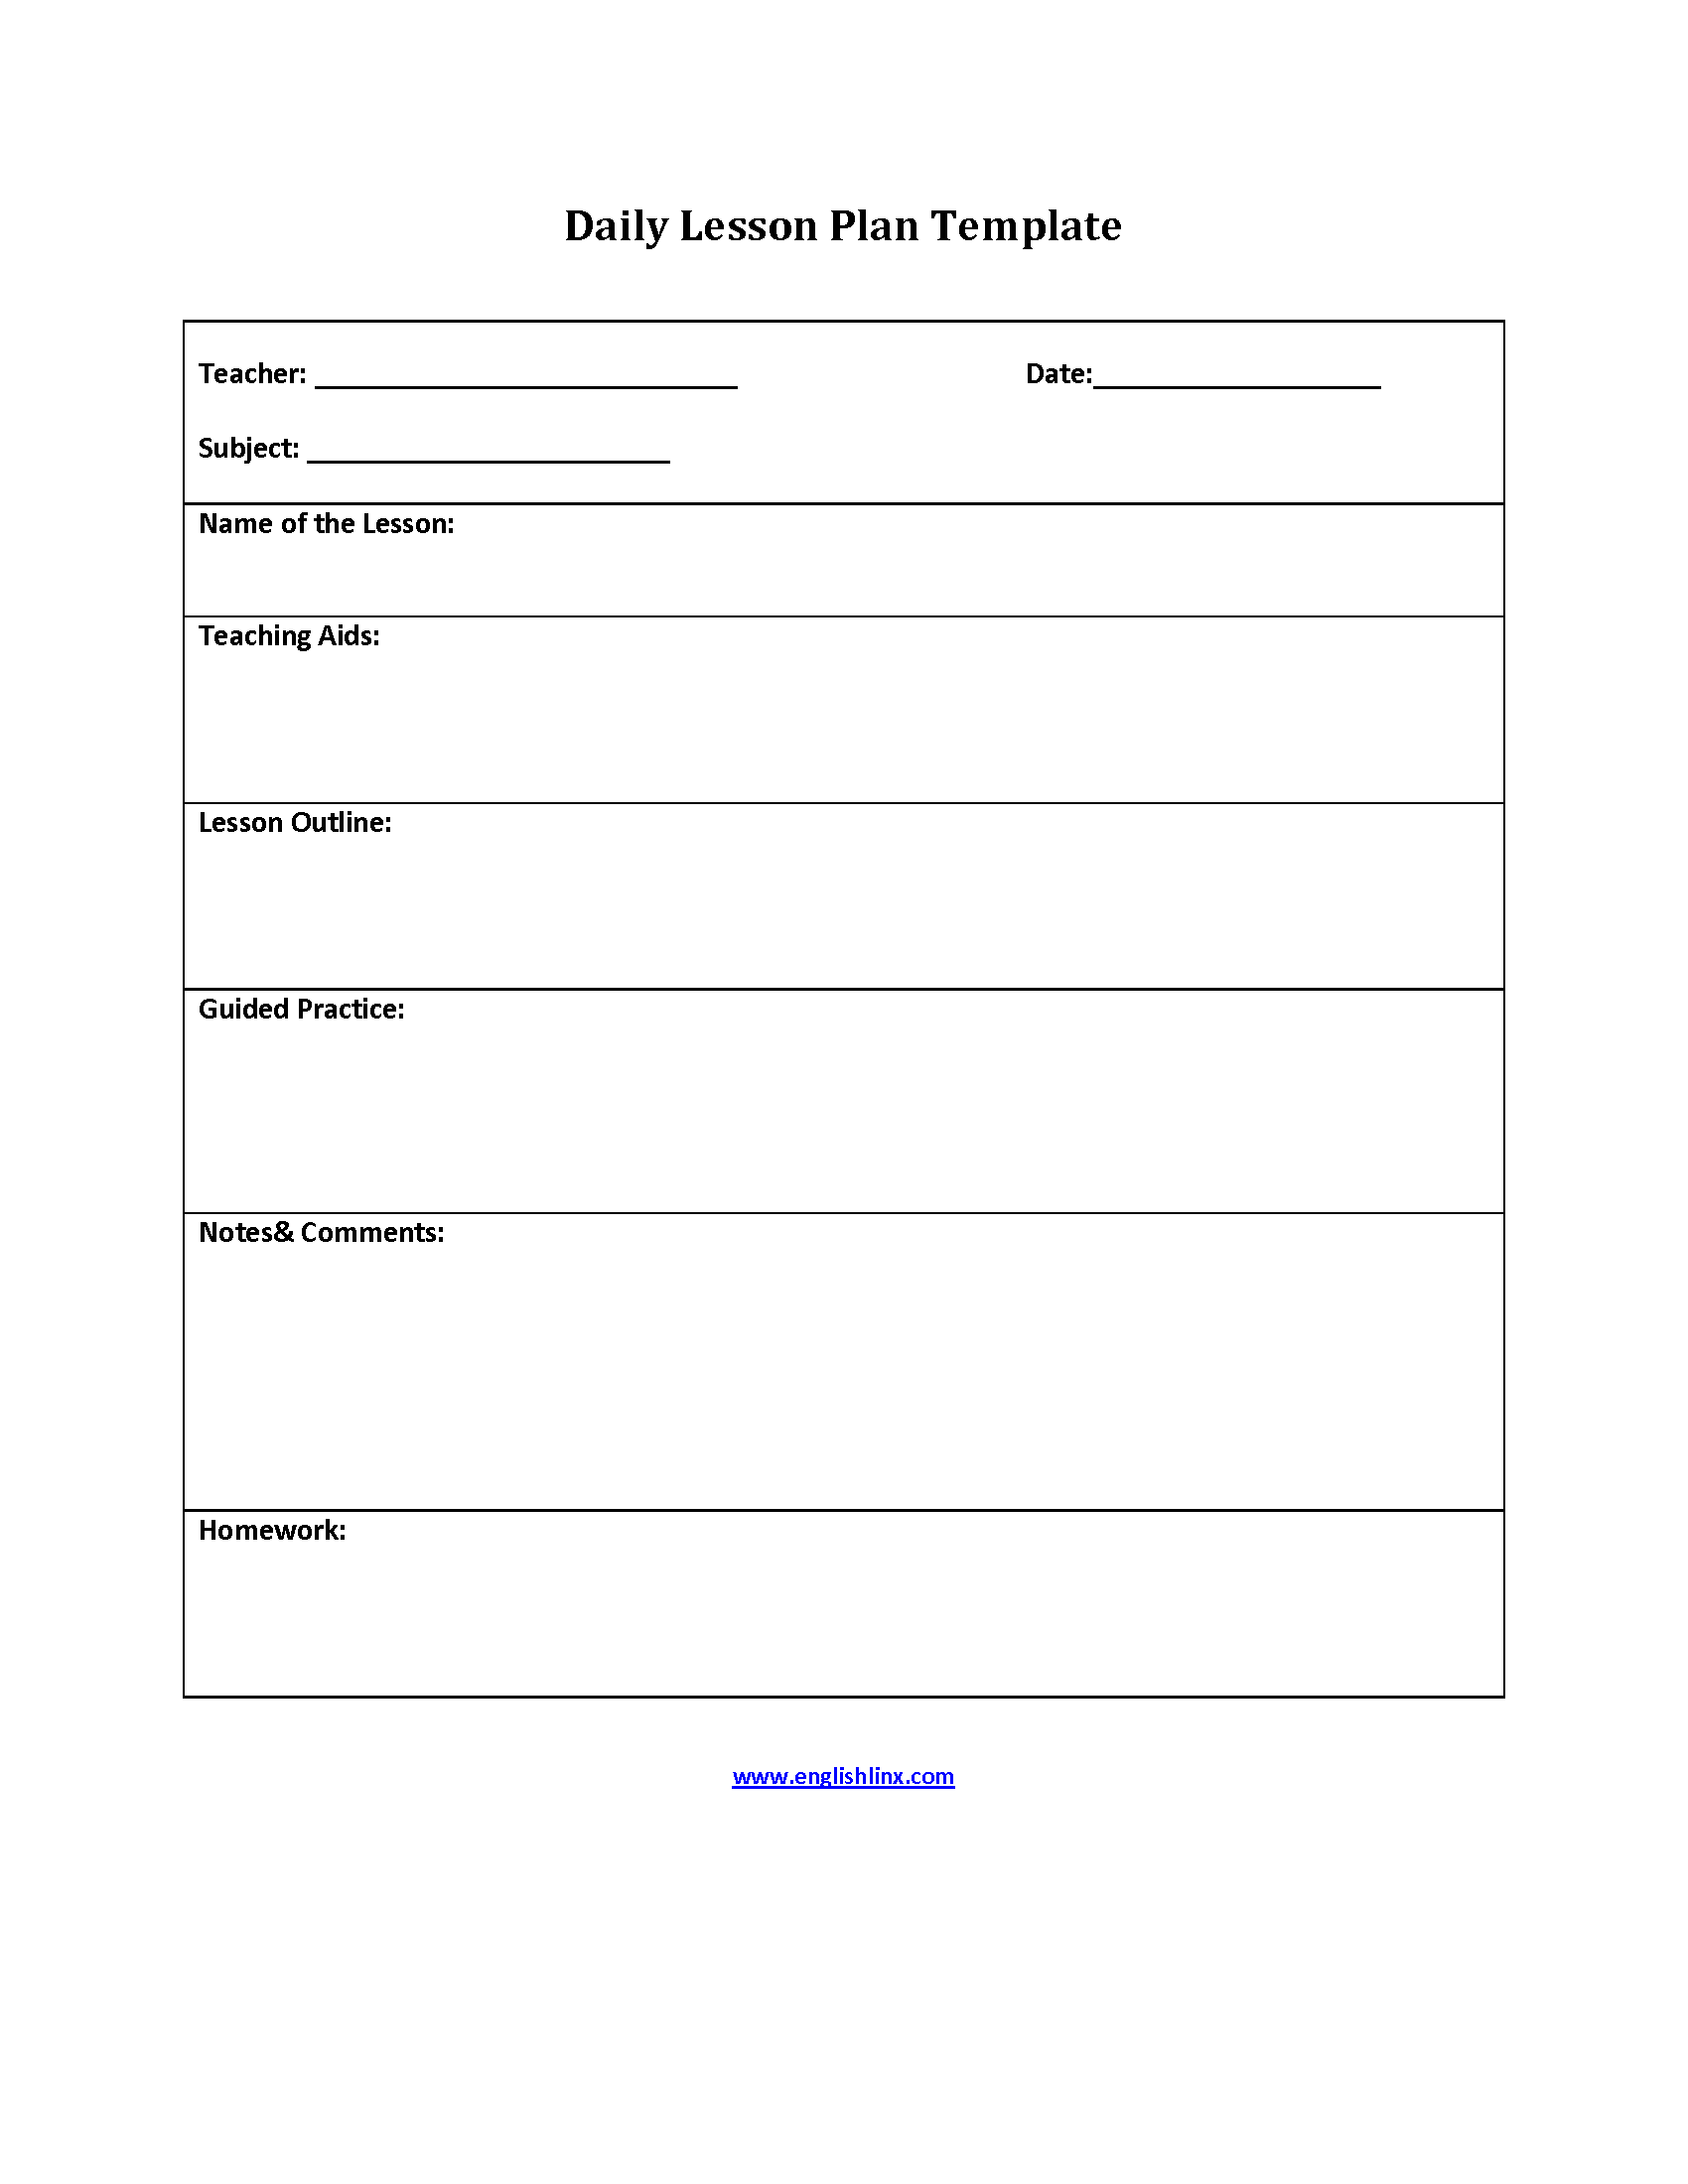 teachers lesson plan template